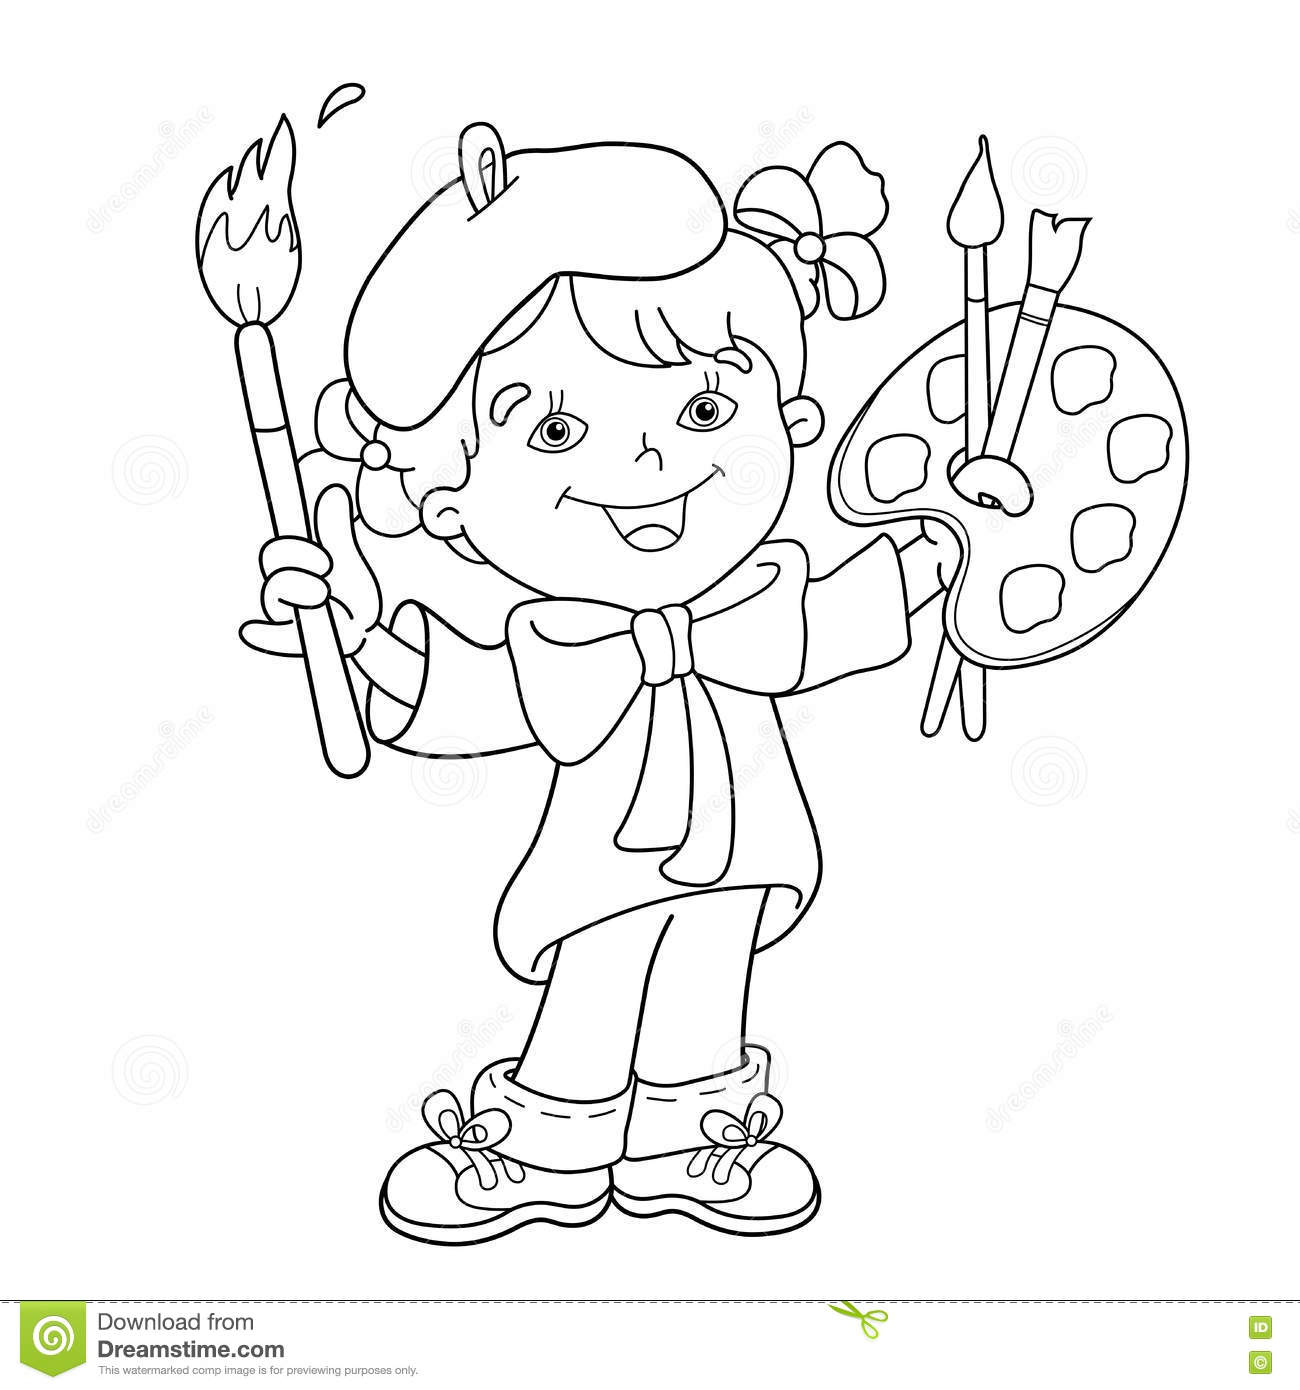 coloring outline for kids free coloring pages printable pictures to color kids kids coloring for outline